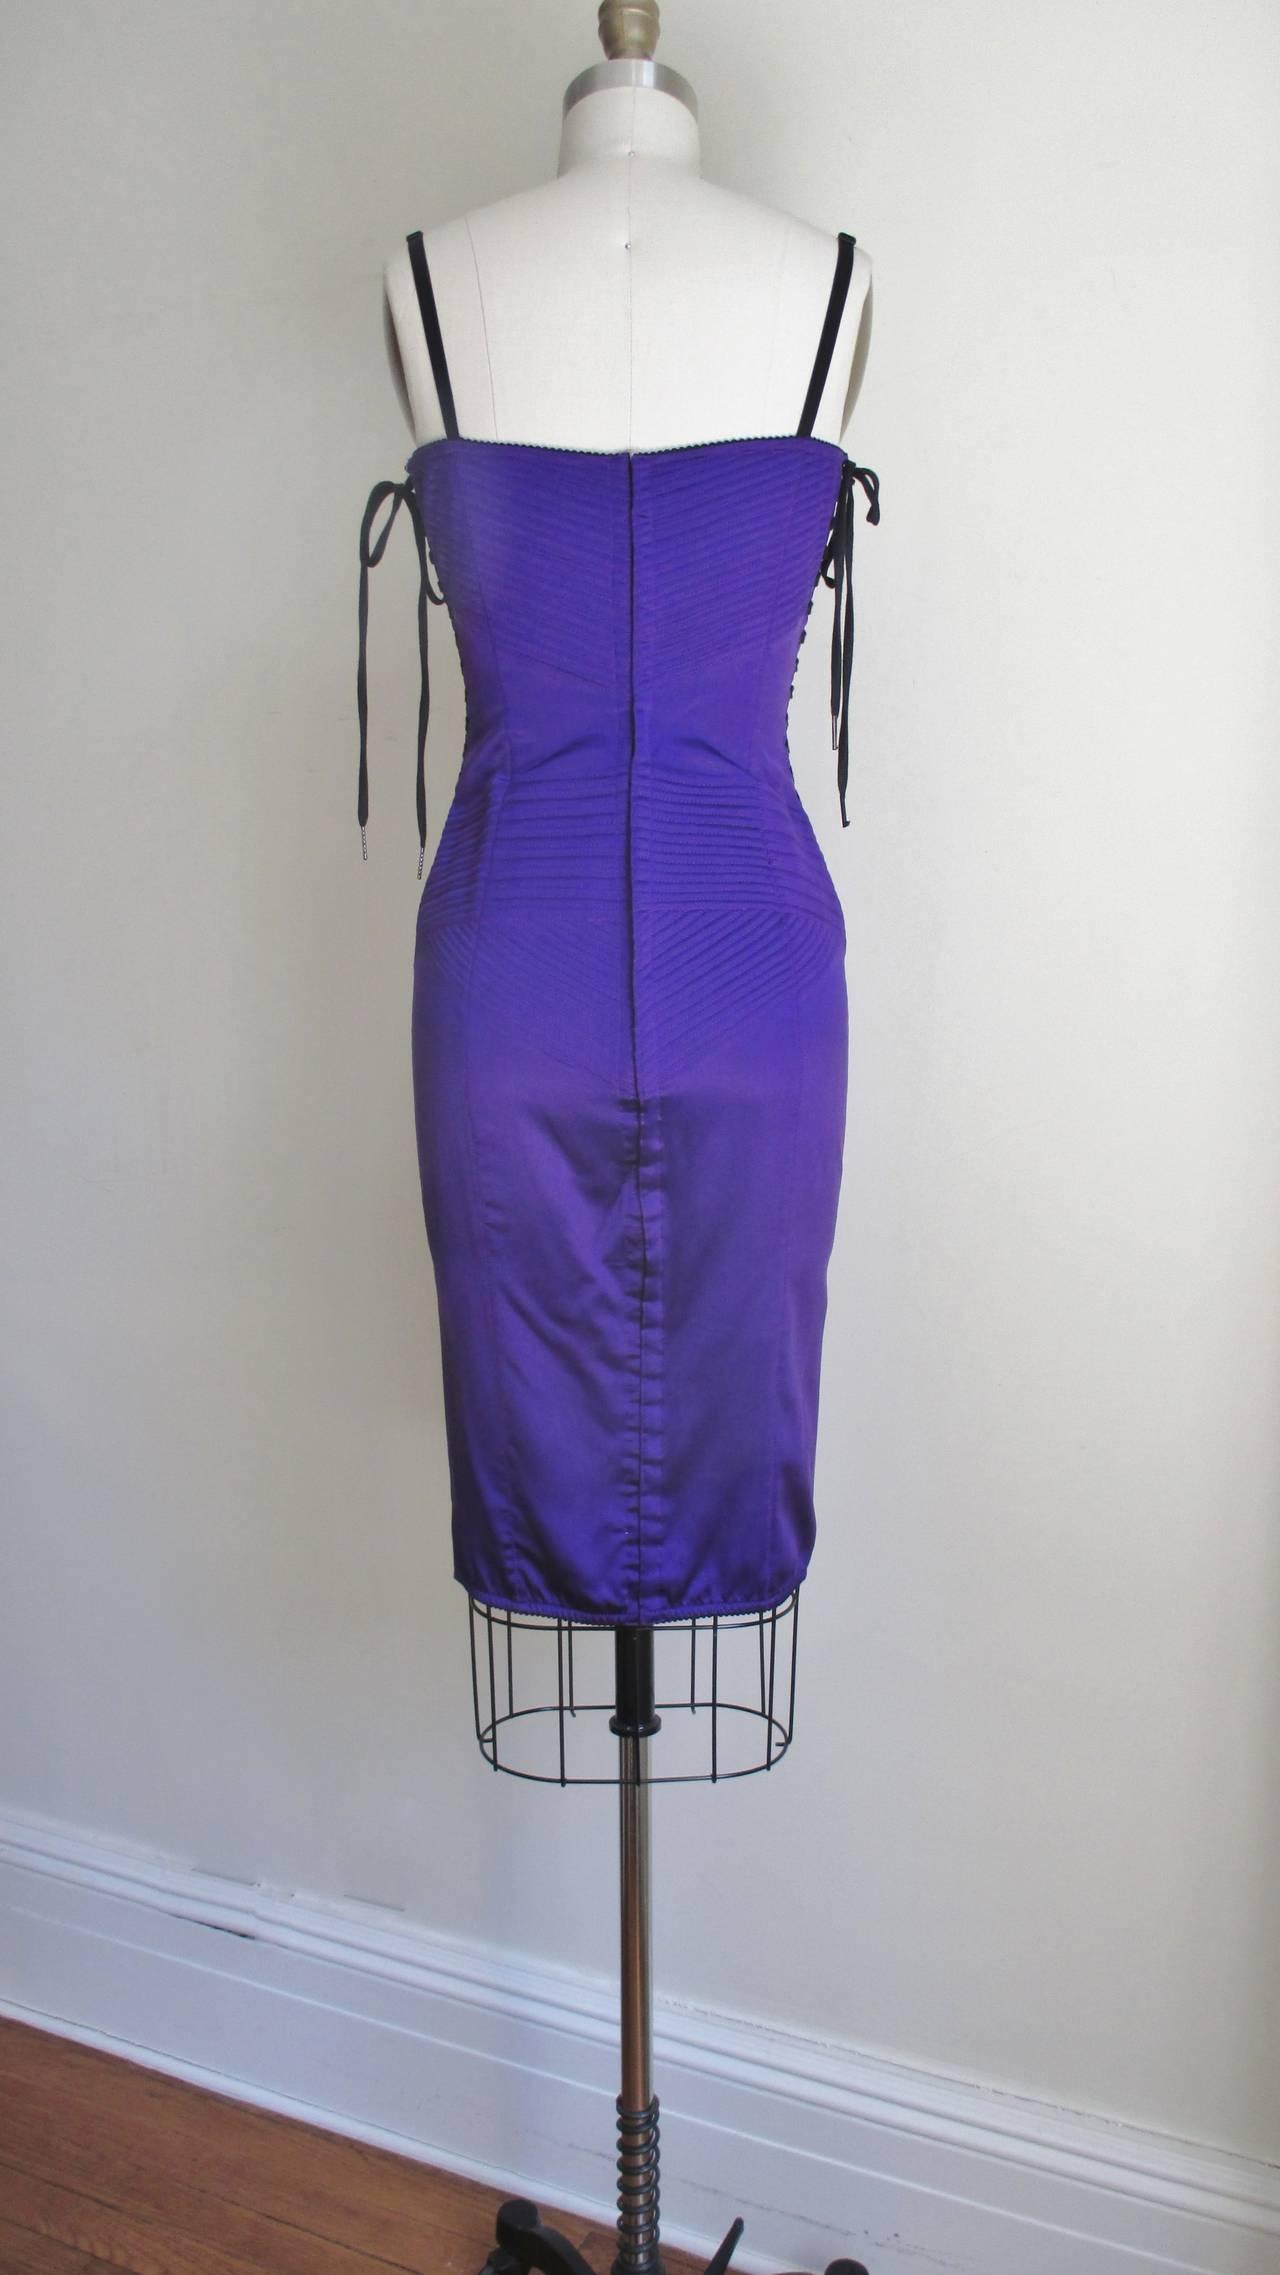 Dolce & Gabbana Corset Dress With Side Lacing 9